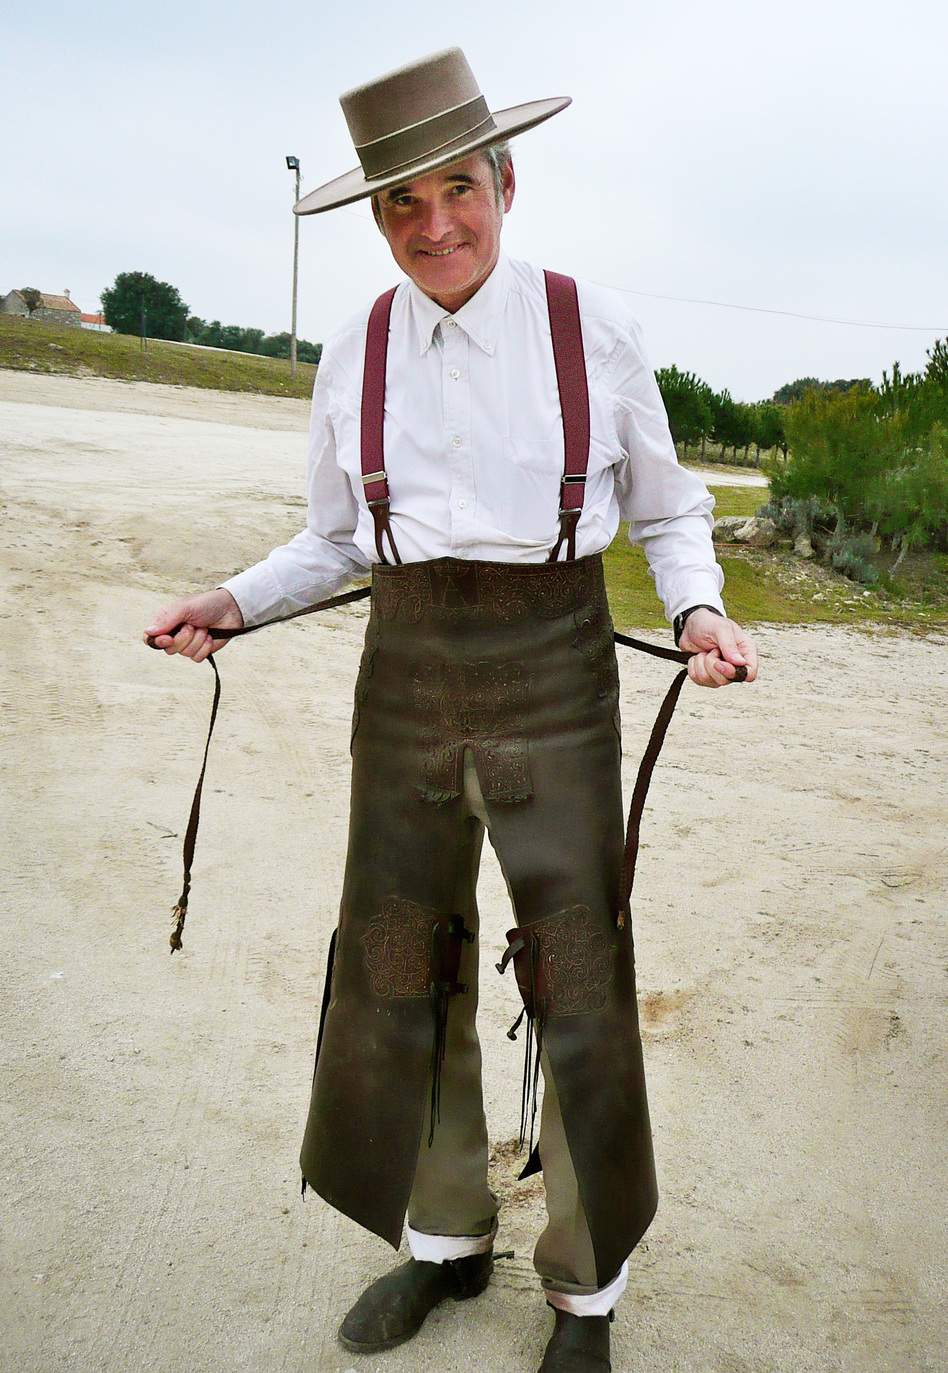 Jaime Patino shows off the leather chaps and 19th-century-style suit he wears while riding horses and hunting wild boar. Parts of his outfit belonged to his grandfather, who also loved hunting.